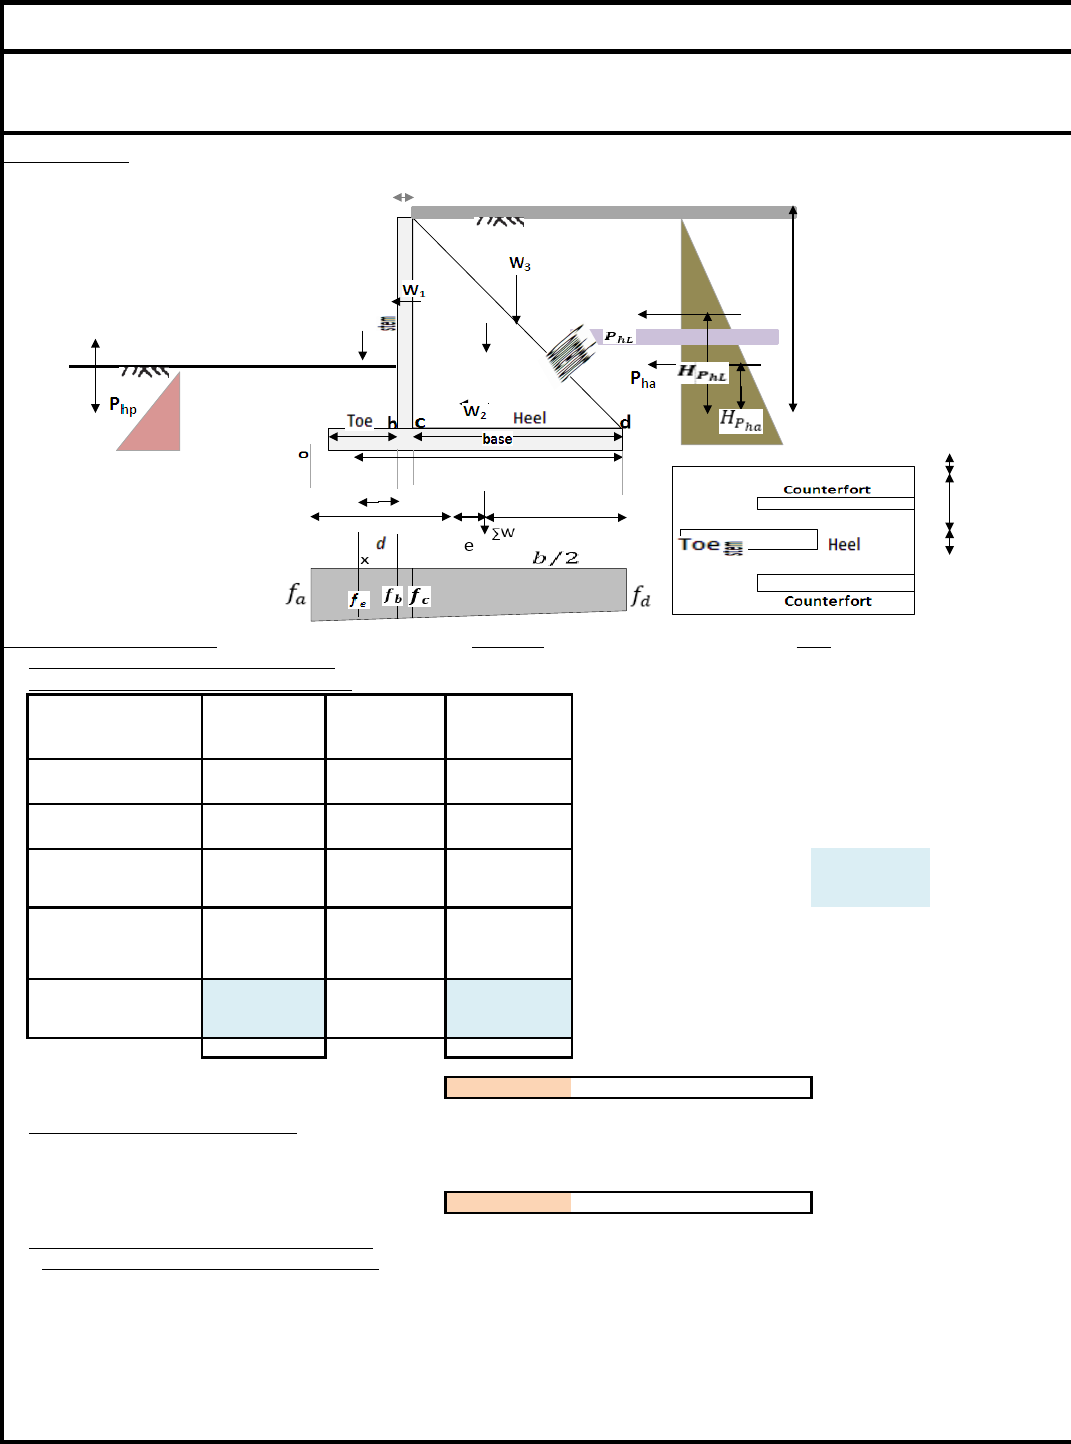 Aci 318 08 Design Of Retaining Wall With Counterfort Rev1